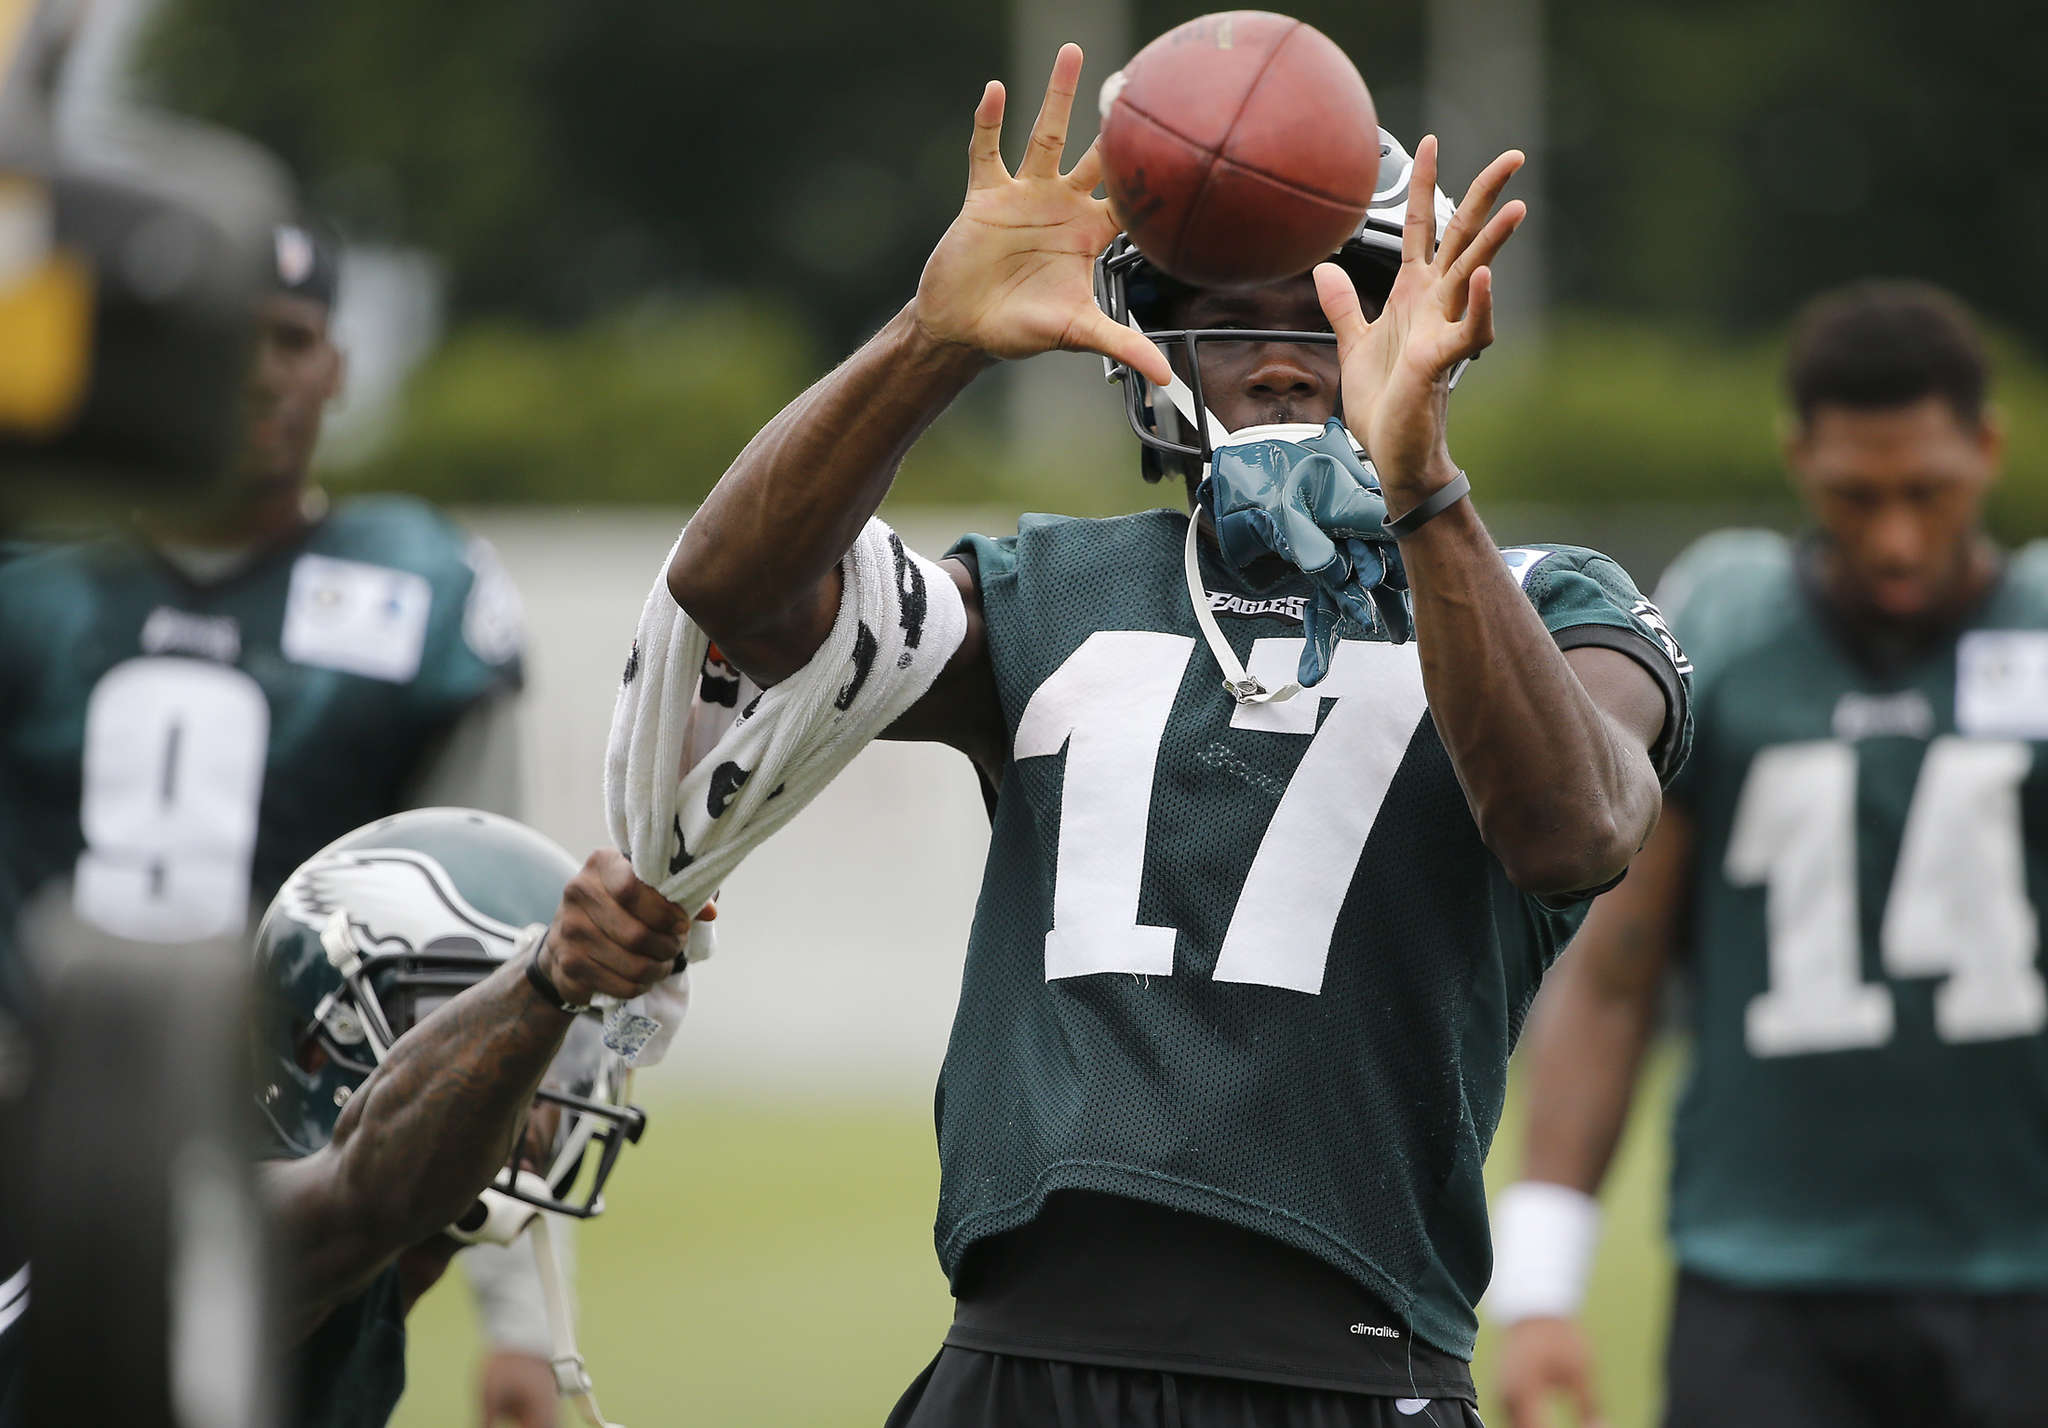 Josh Huff uses a towel to pull the arm of Nelson Agholor during a drill.